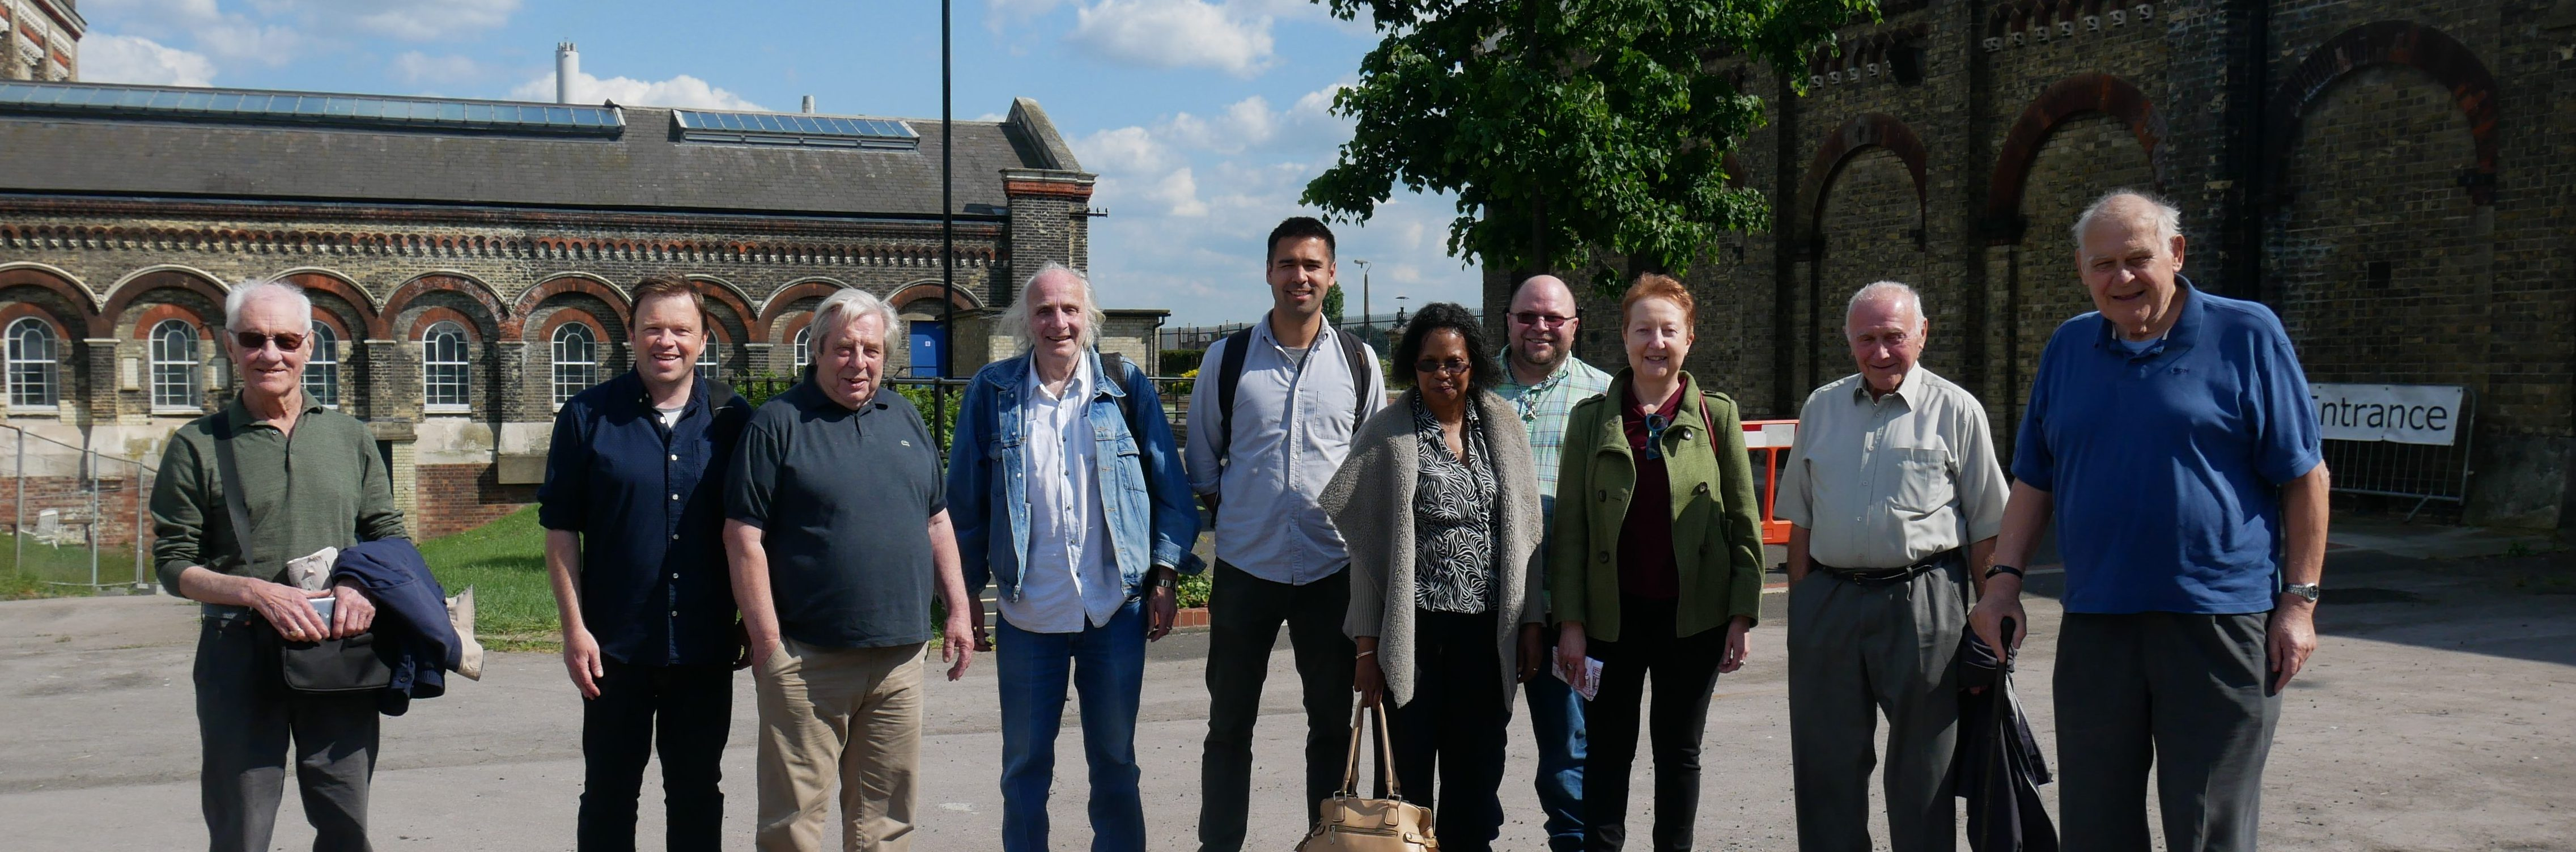 Our walking group explores the city, such as this trip to Crossness Pump Station